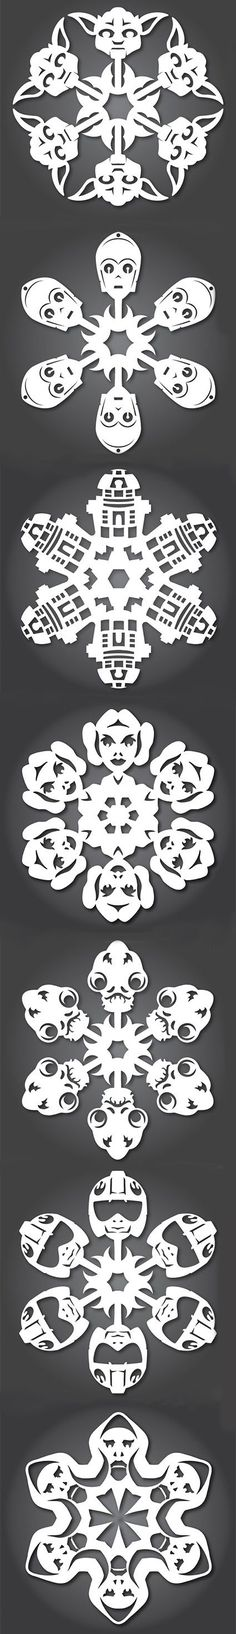 Add some nerdy flair to your winter decorations with these Star Wars themed snowflakes. #snowflakes #starwars #winter